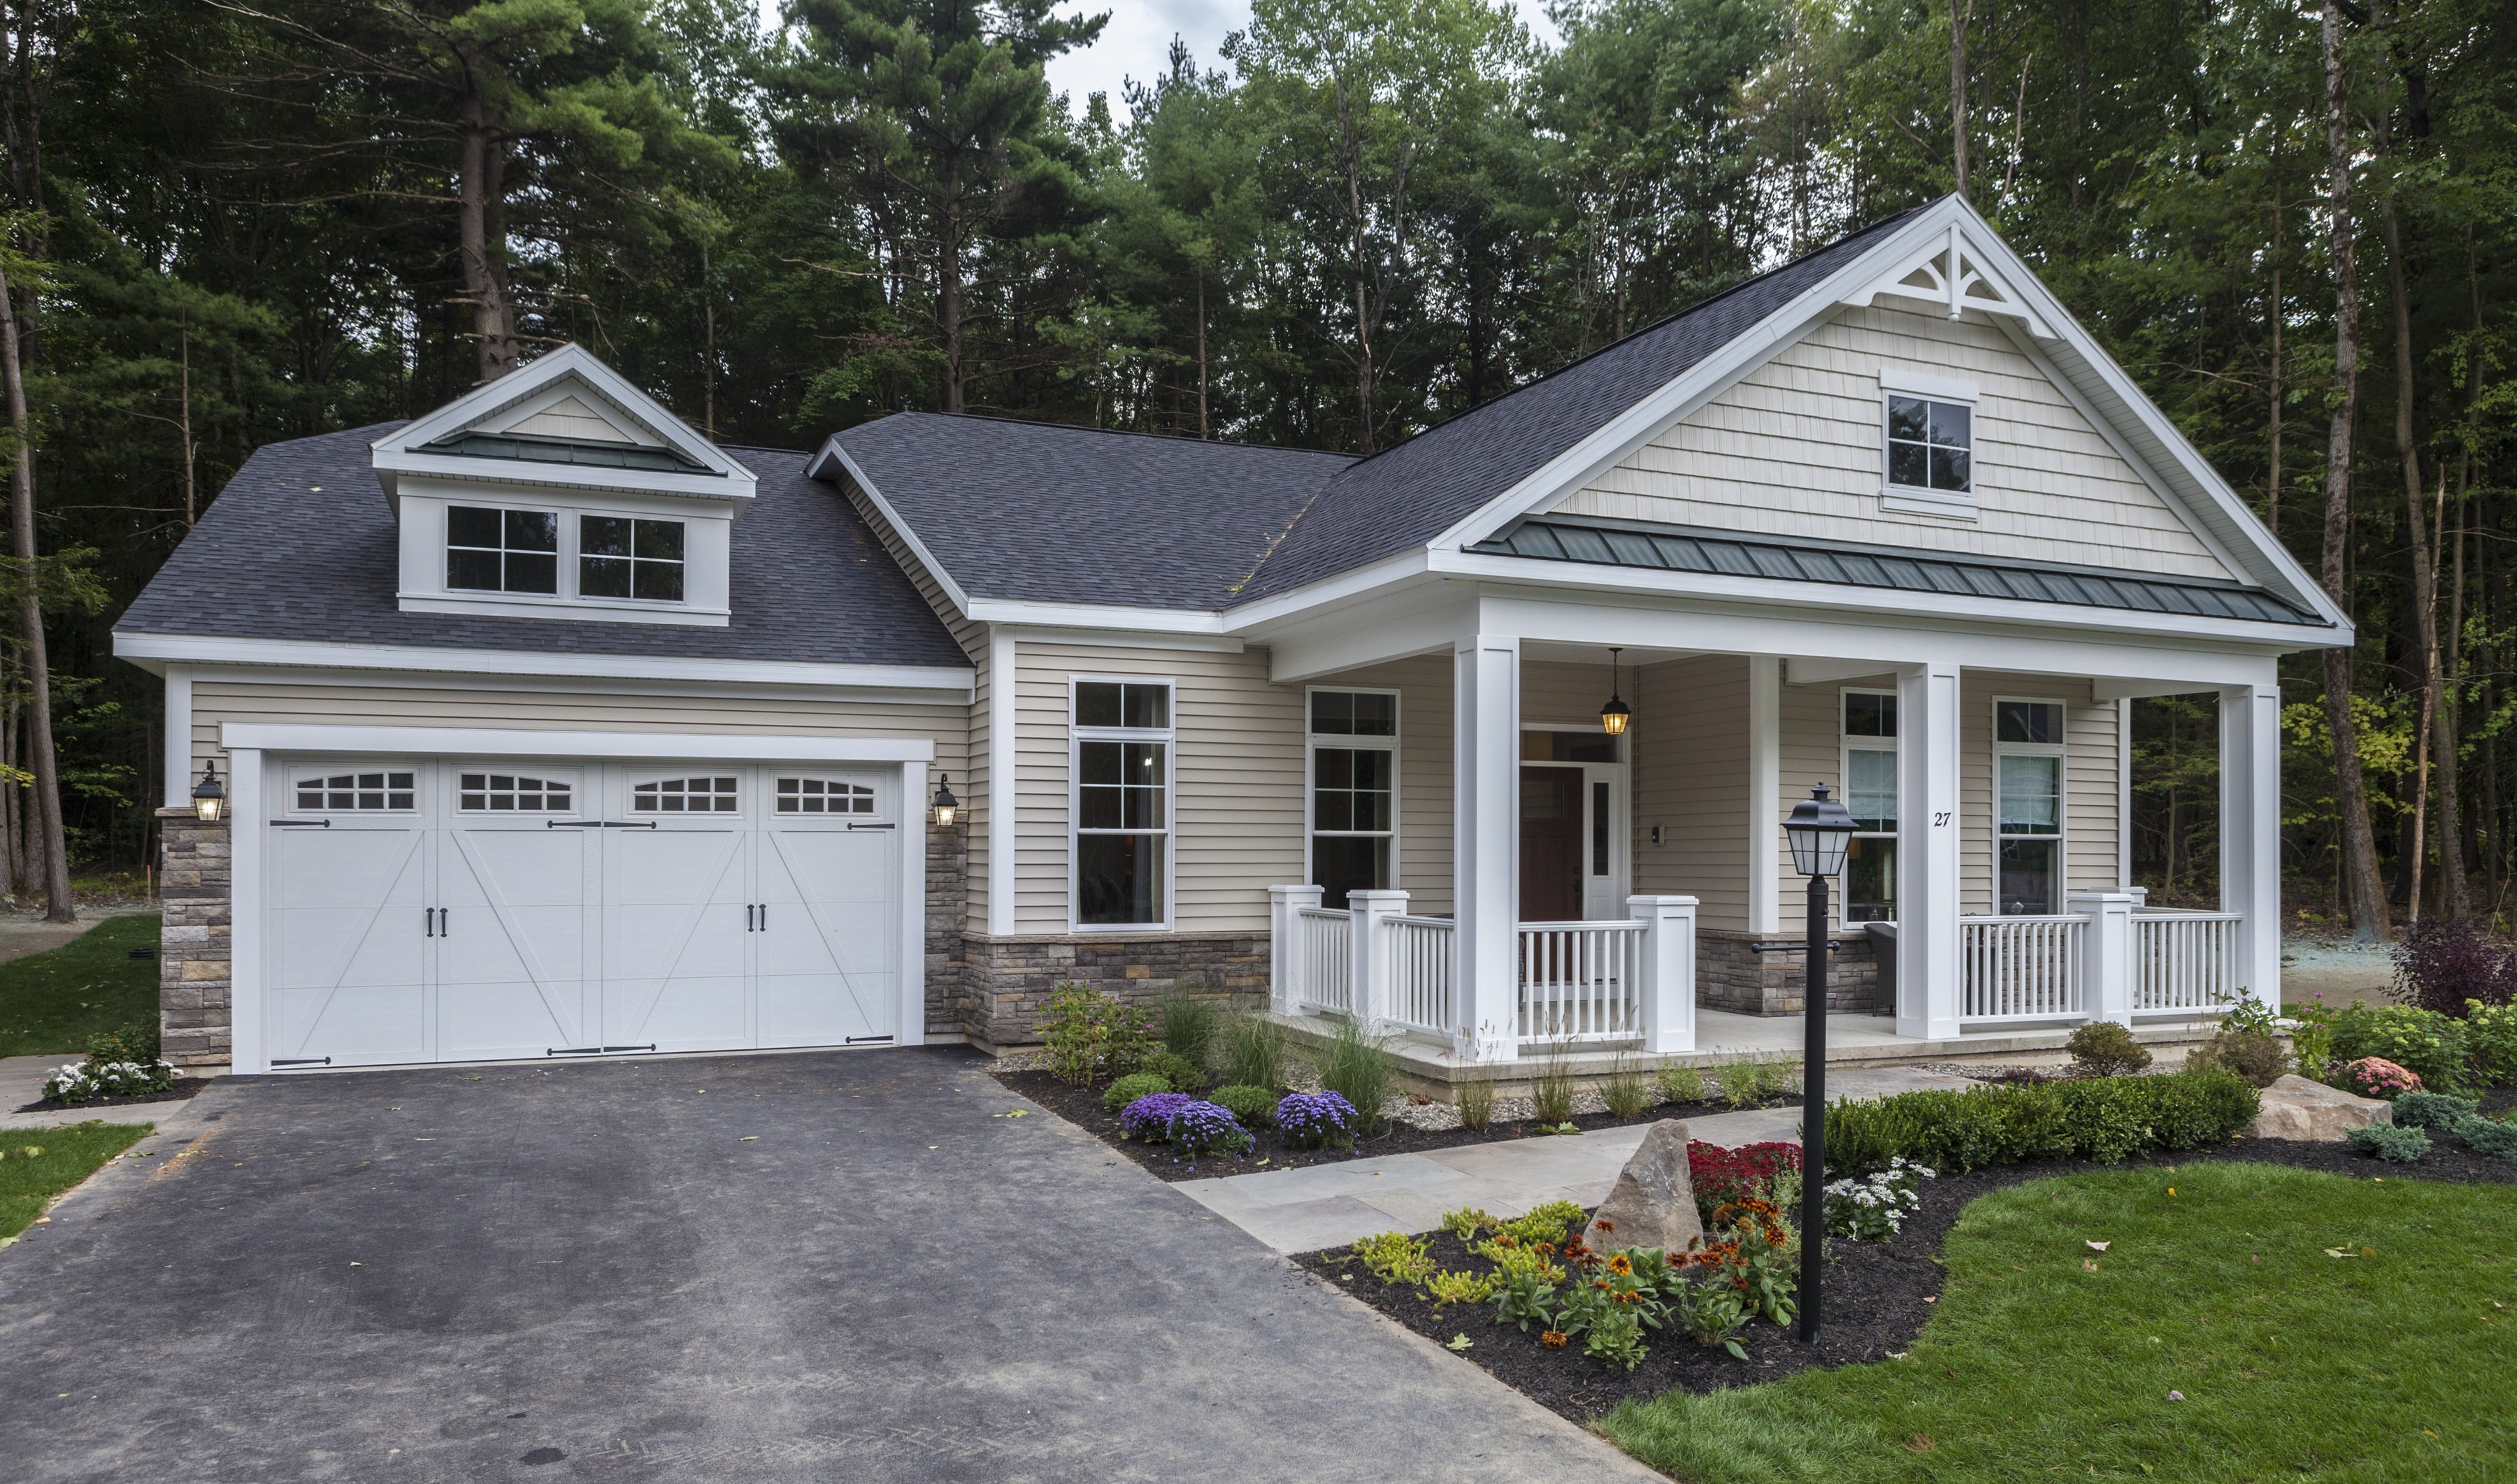 Carriage House Plans Model Homes Malta Development Electrical Contractor Quality Plan Home Showcase